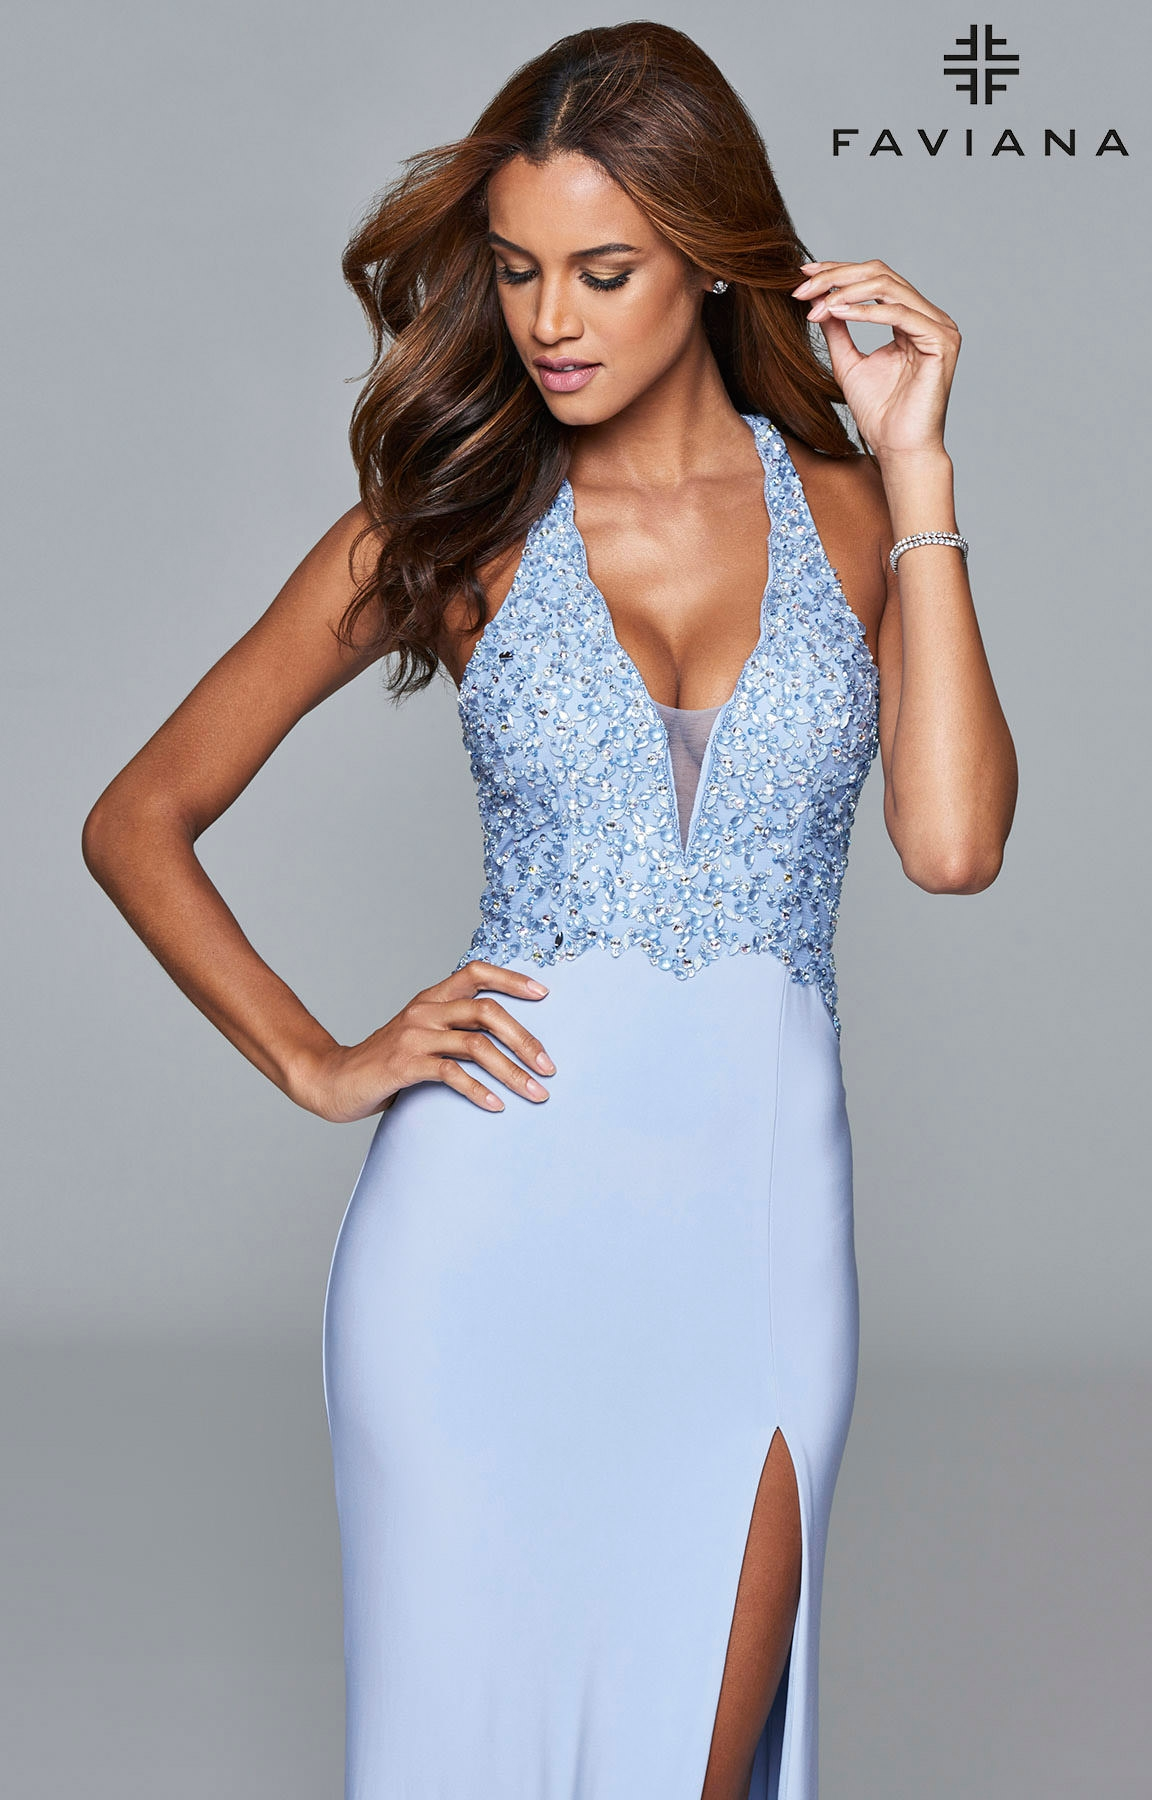 Faviana S7908 Beaded Halter Jersey Dress Prom Dress